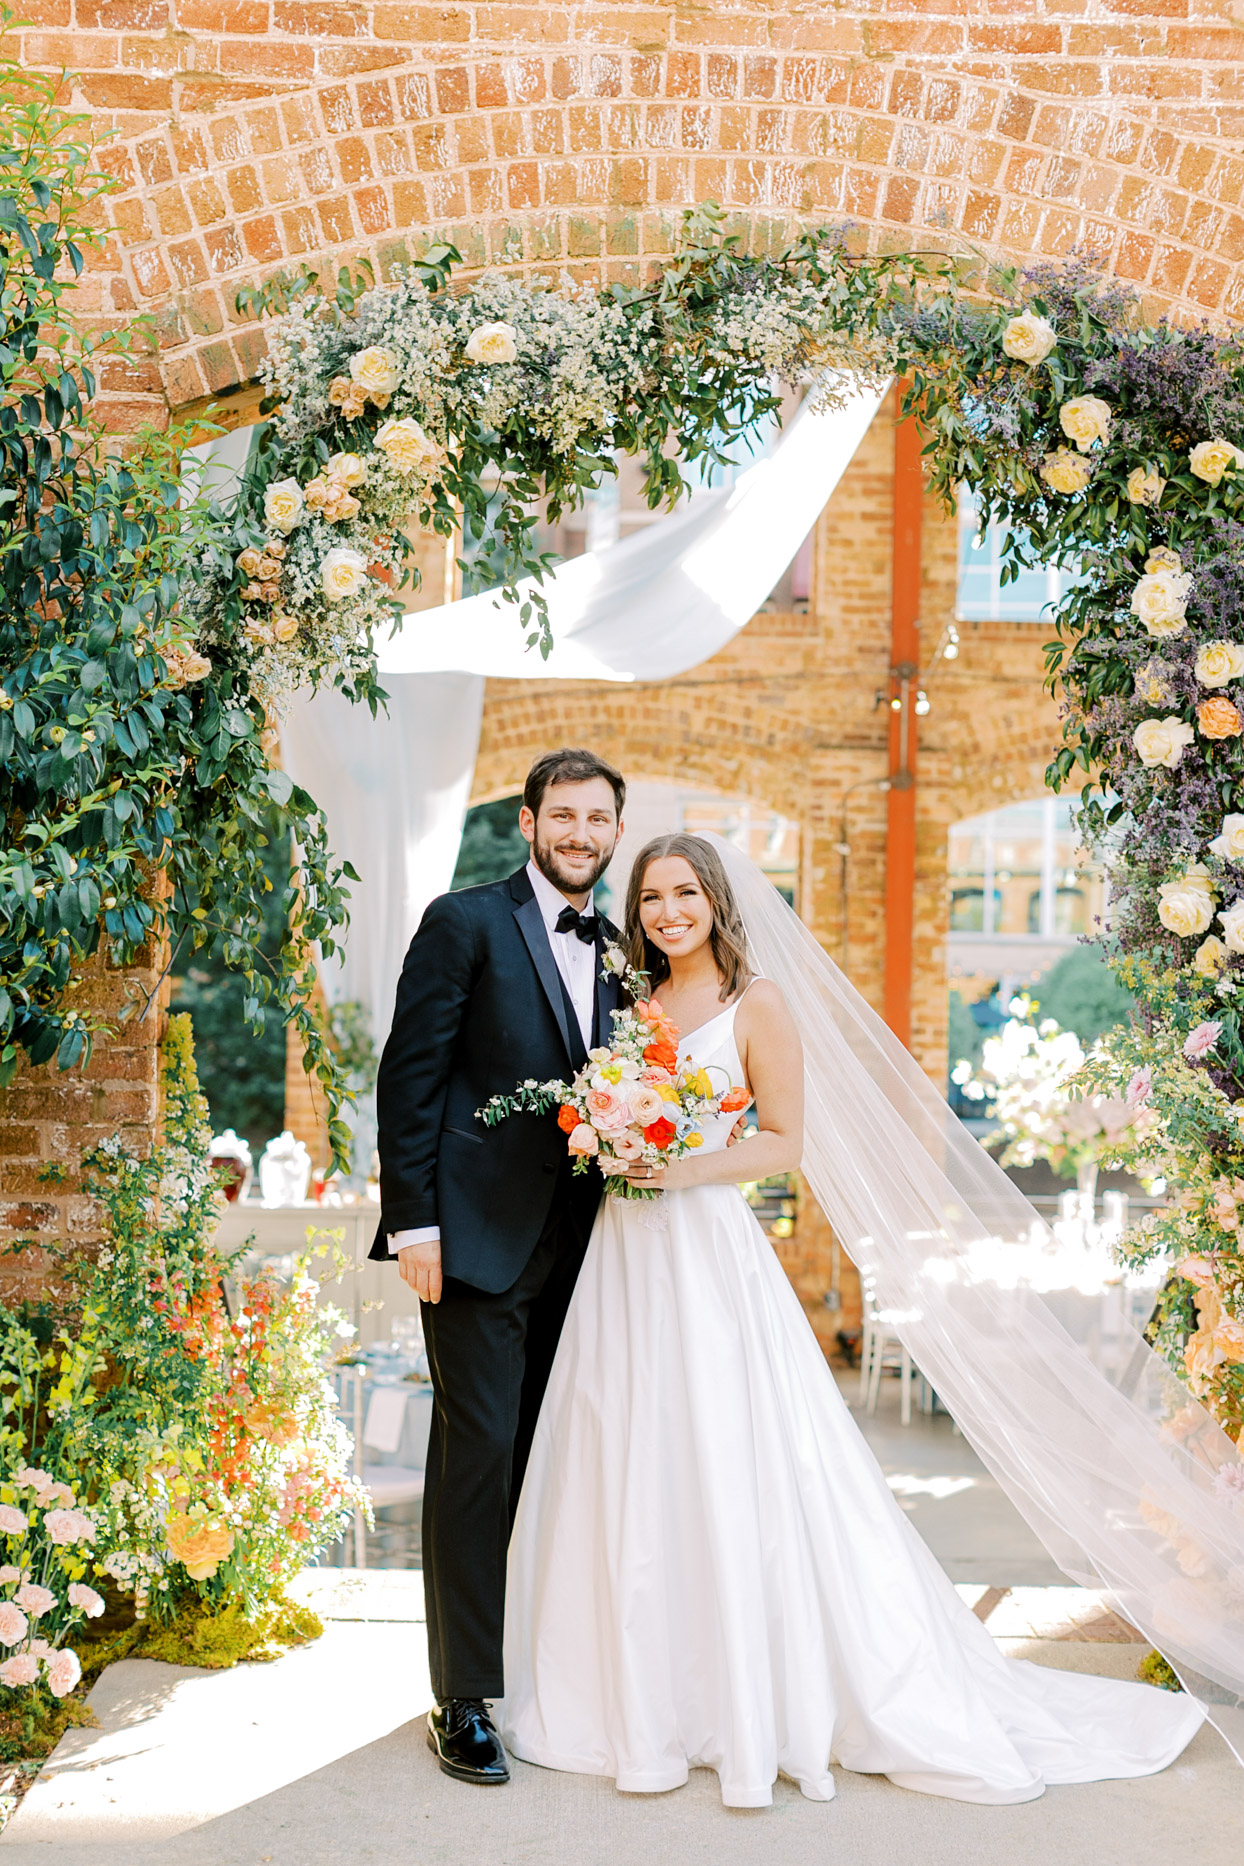 bride and groom smiling under floral covered archway